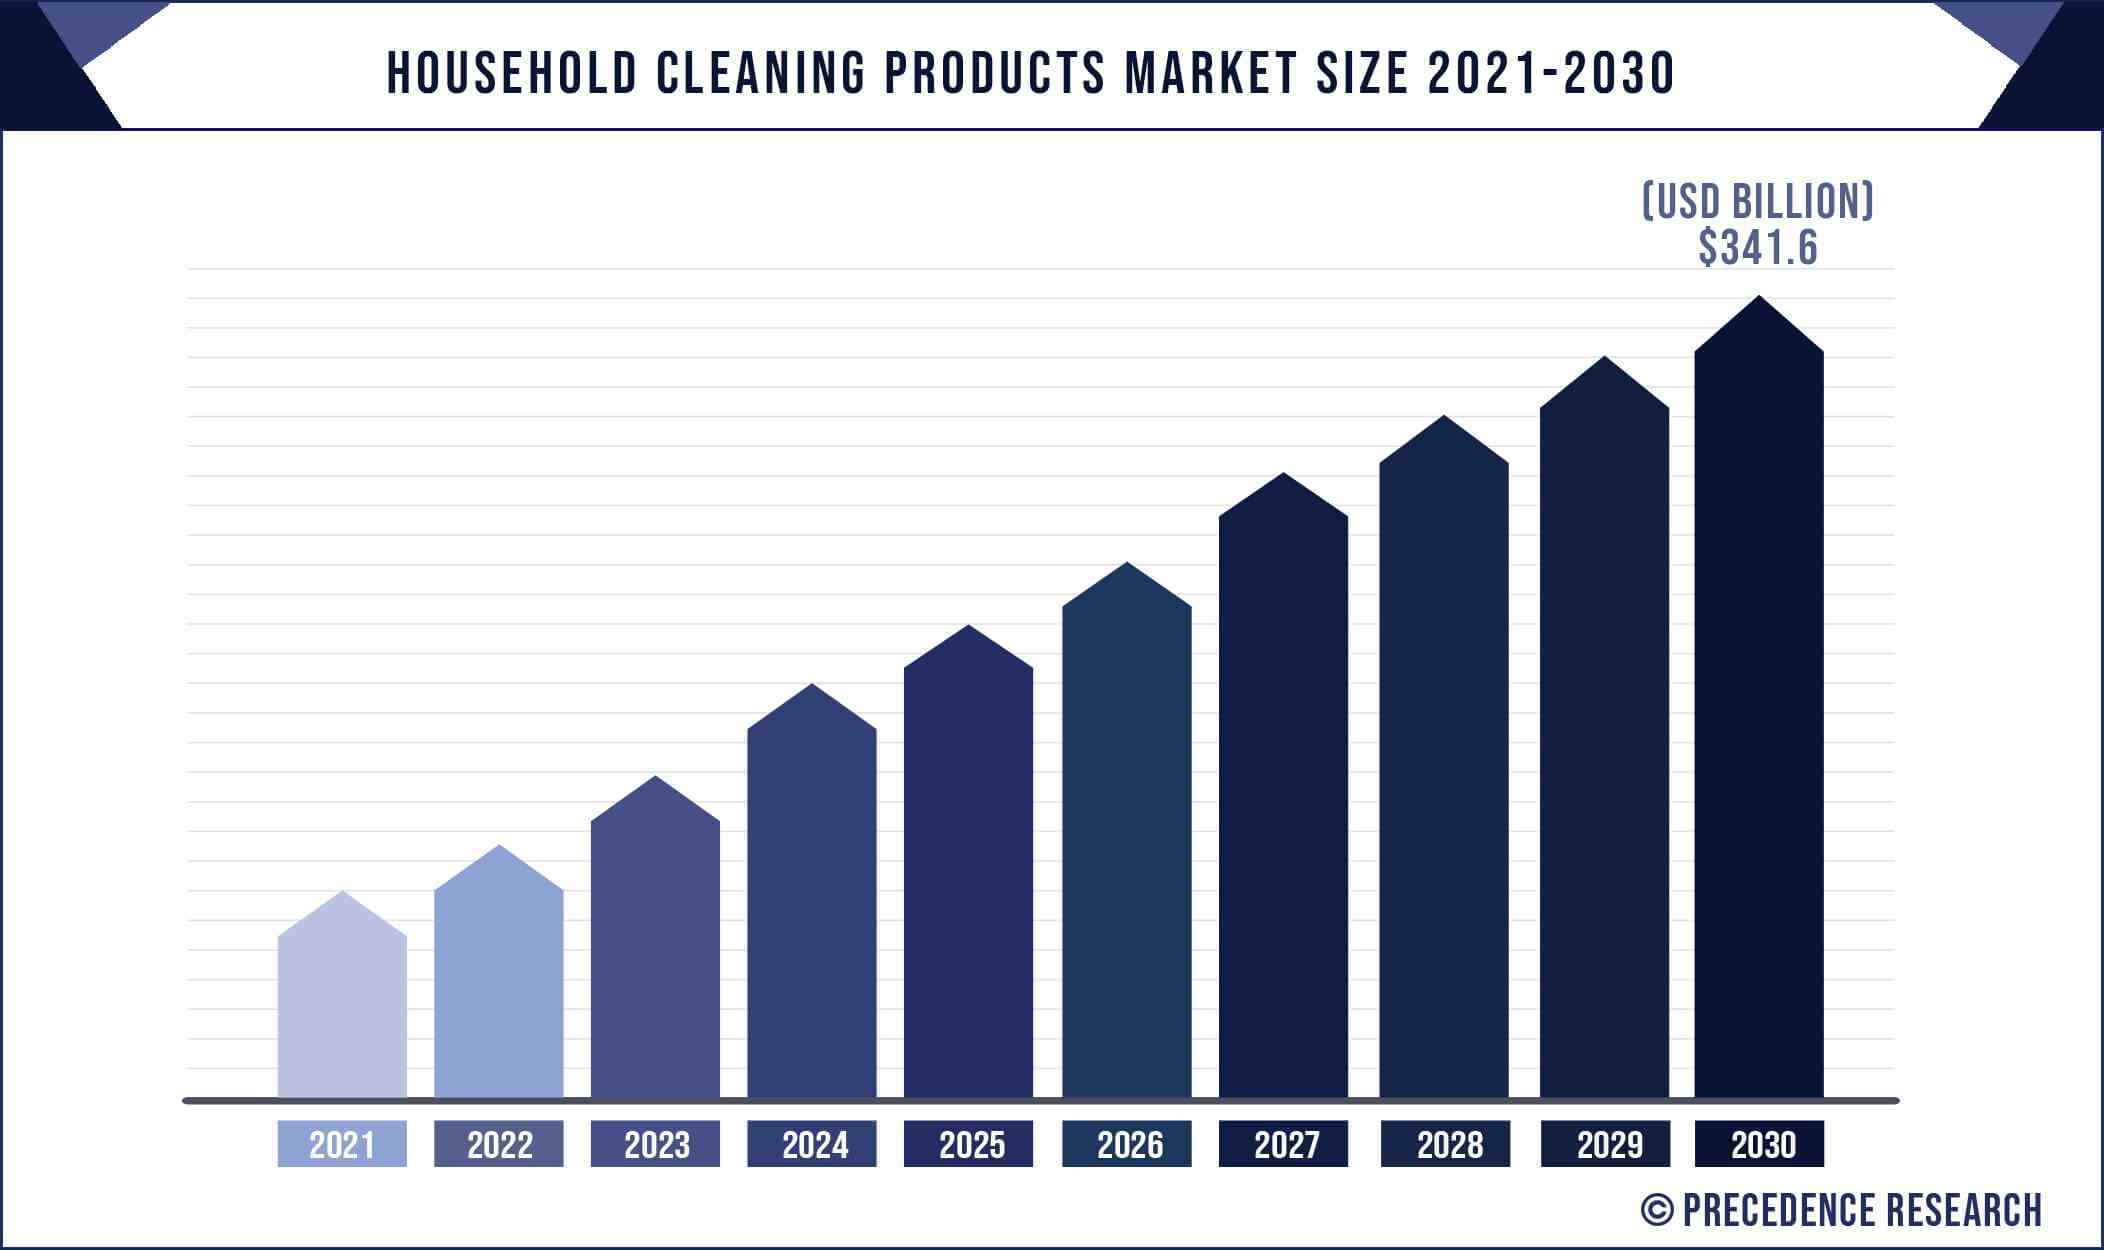 Household Cleaning Products Market Size 2021 to 2030